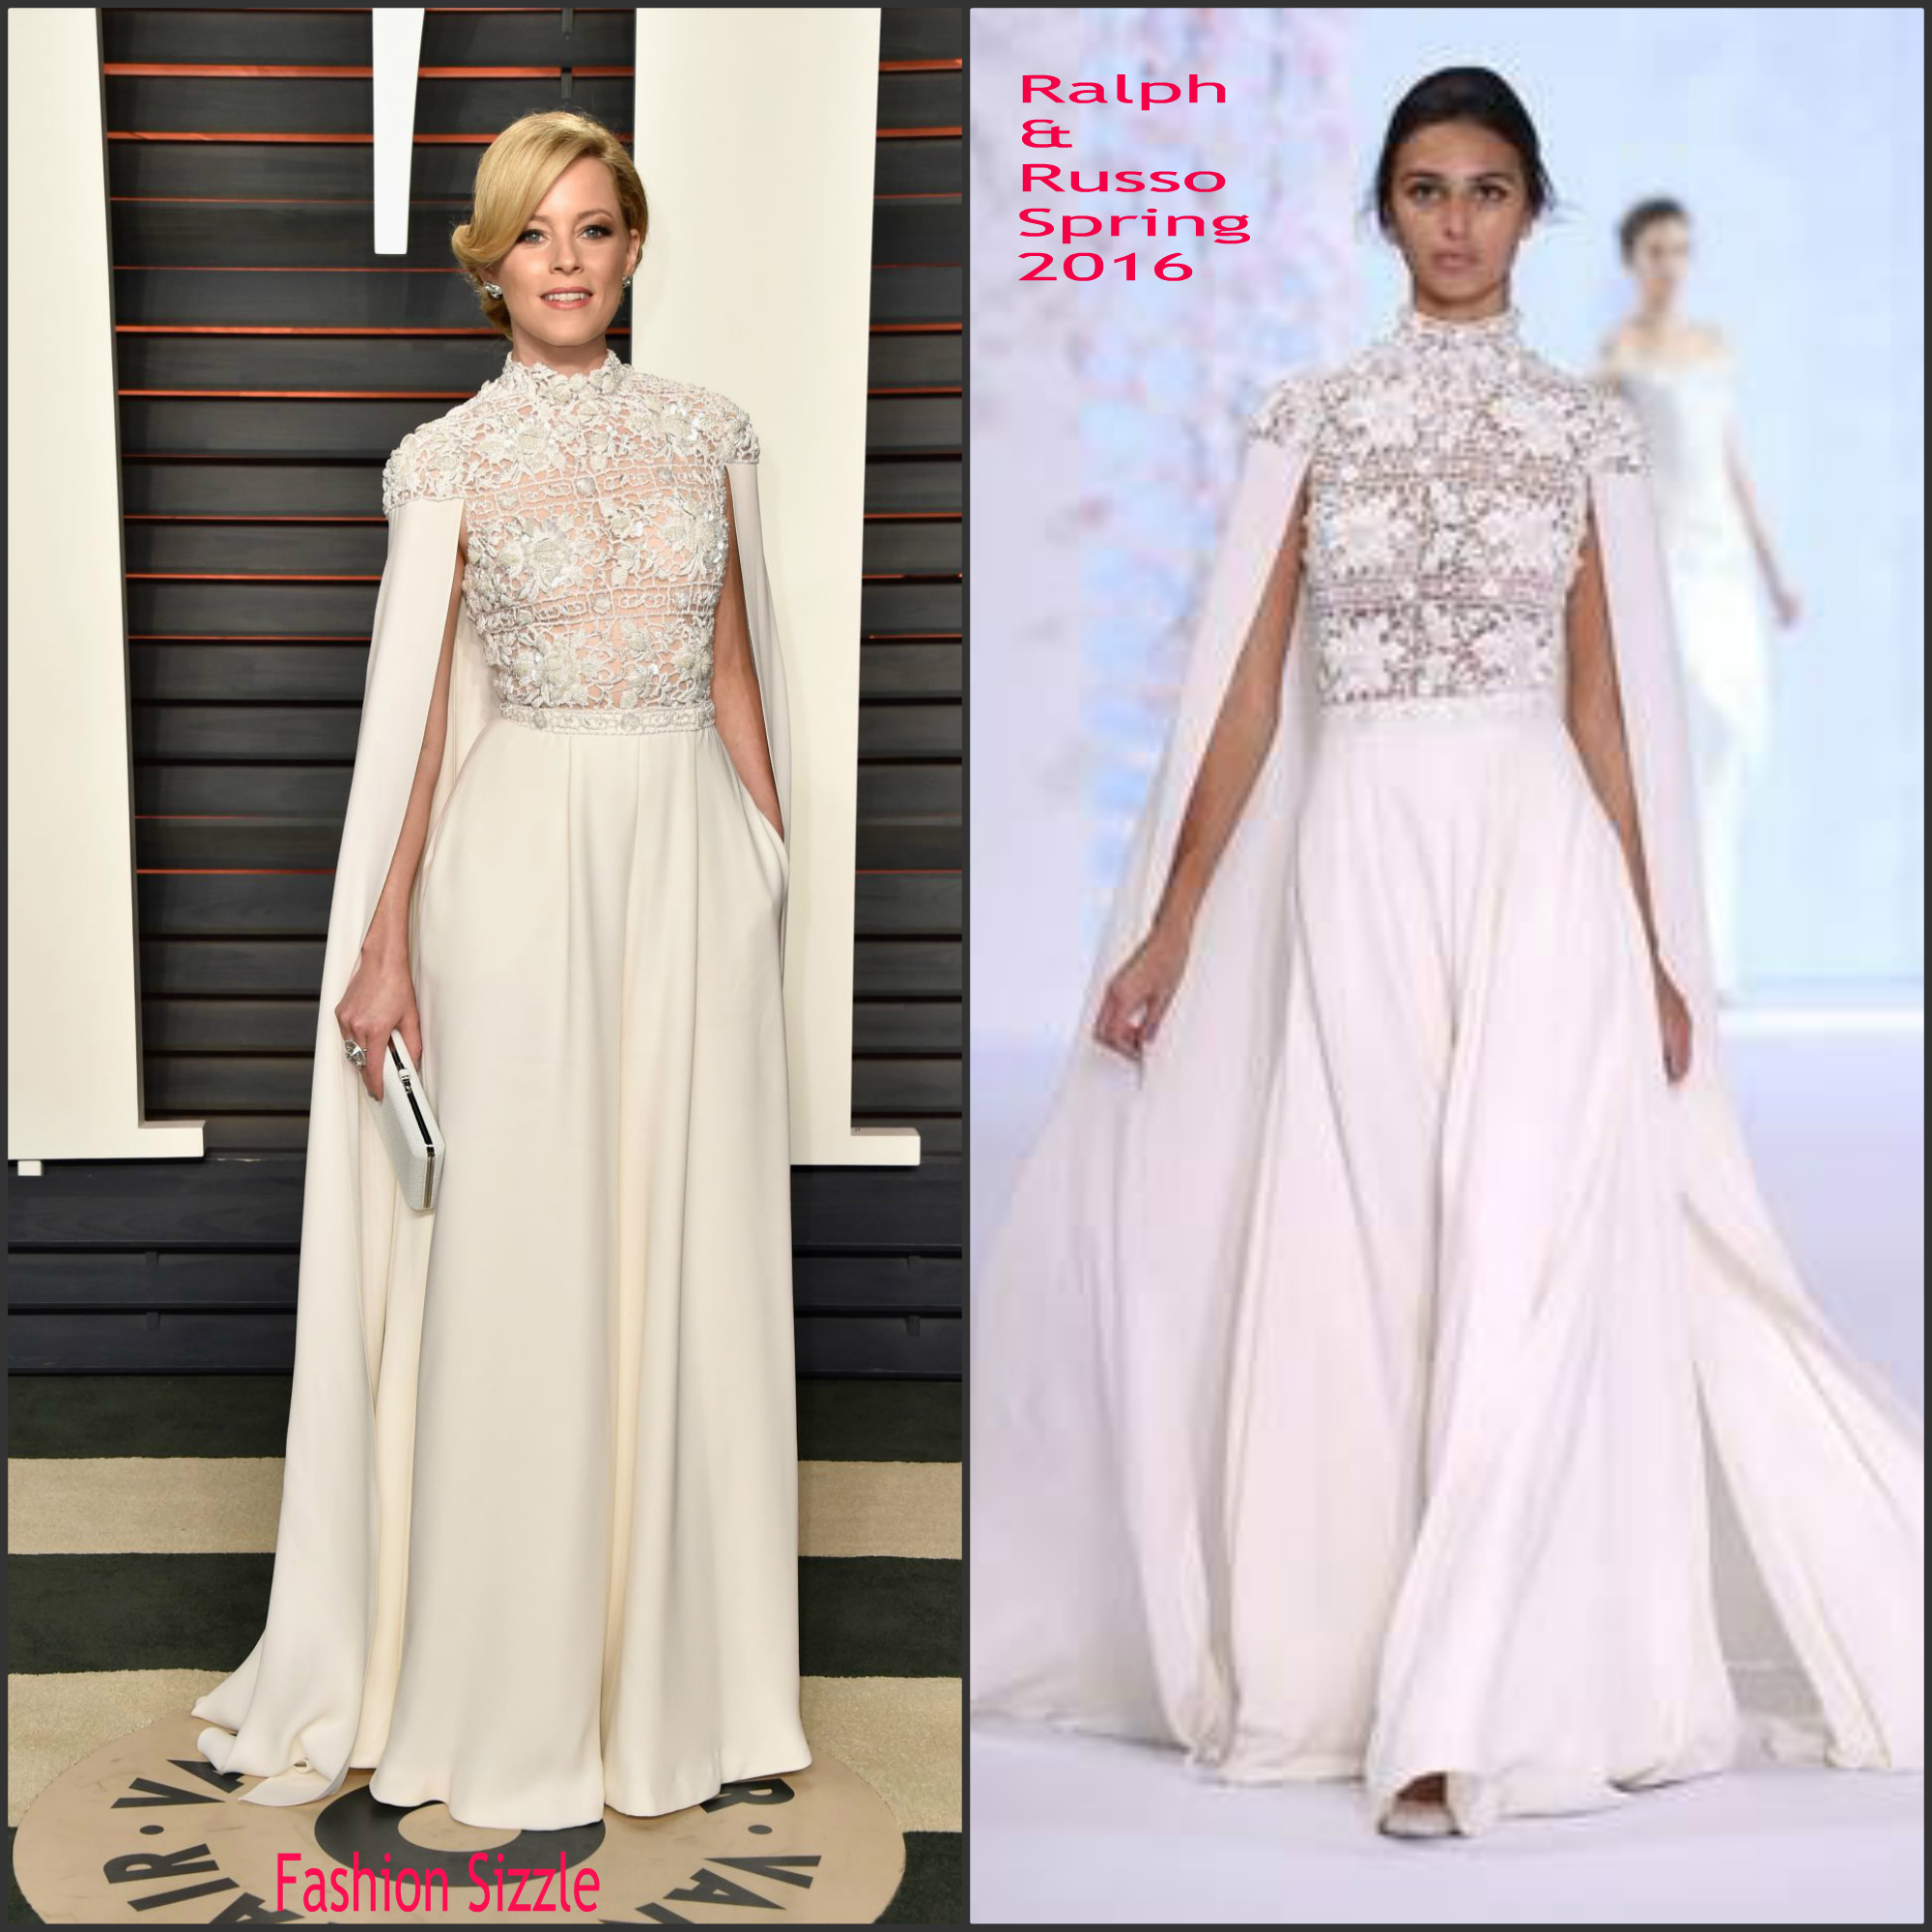 elizabeth-banks-in-ralph-russo-couture-2016-vanity-fair-oscar-party-1 (1)